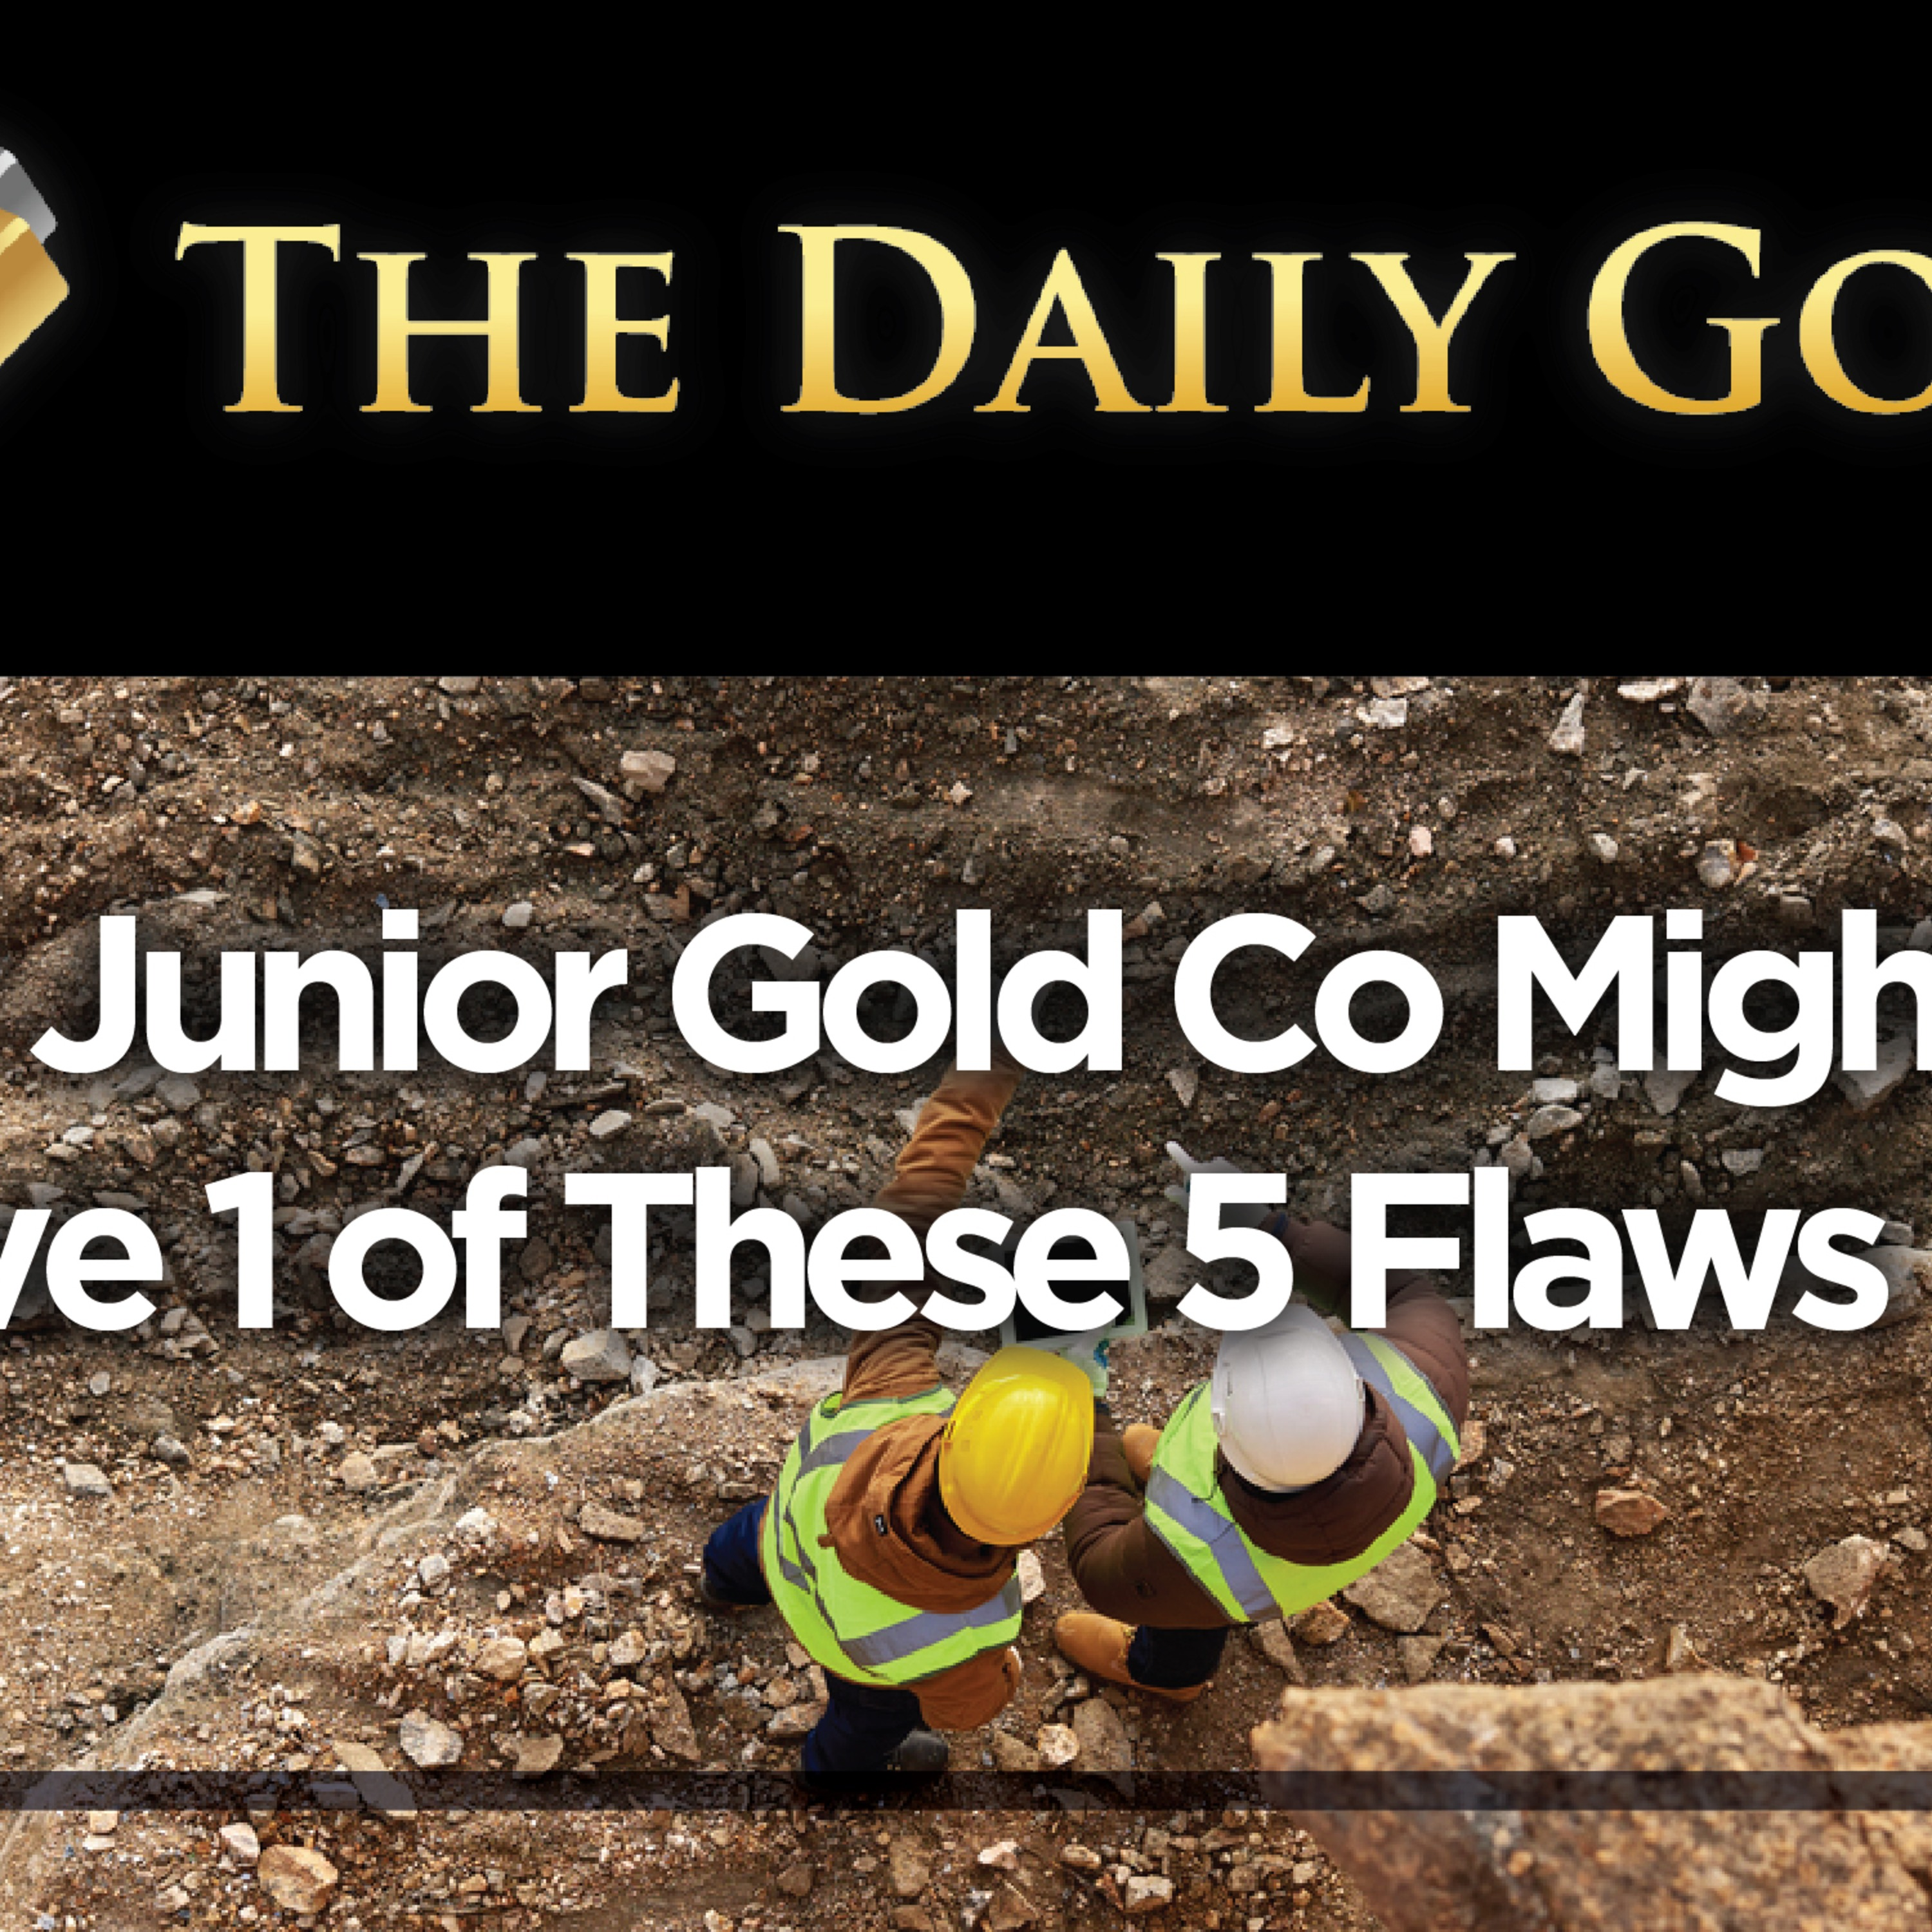 Your Junior Gold Company Might Have 1 of These Flaws...